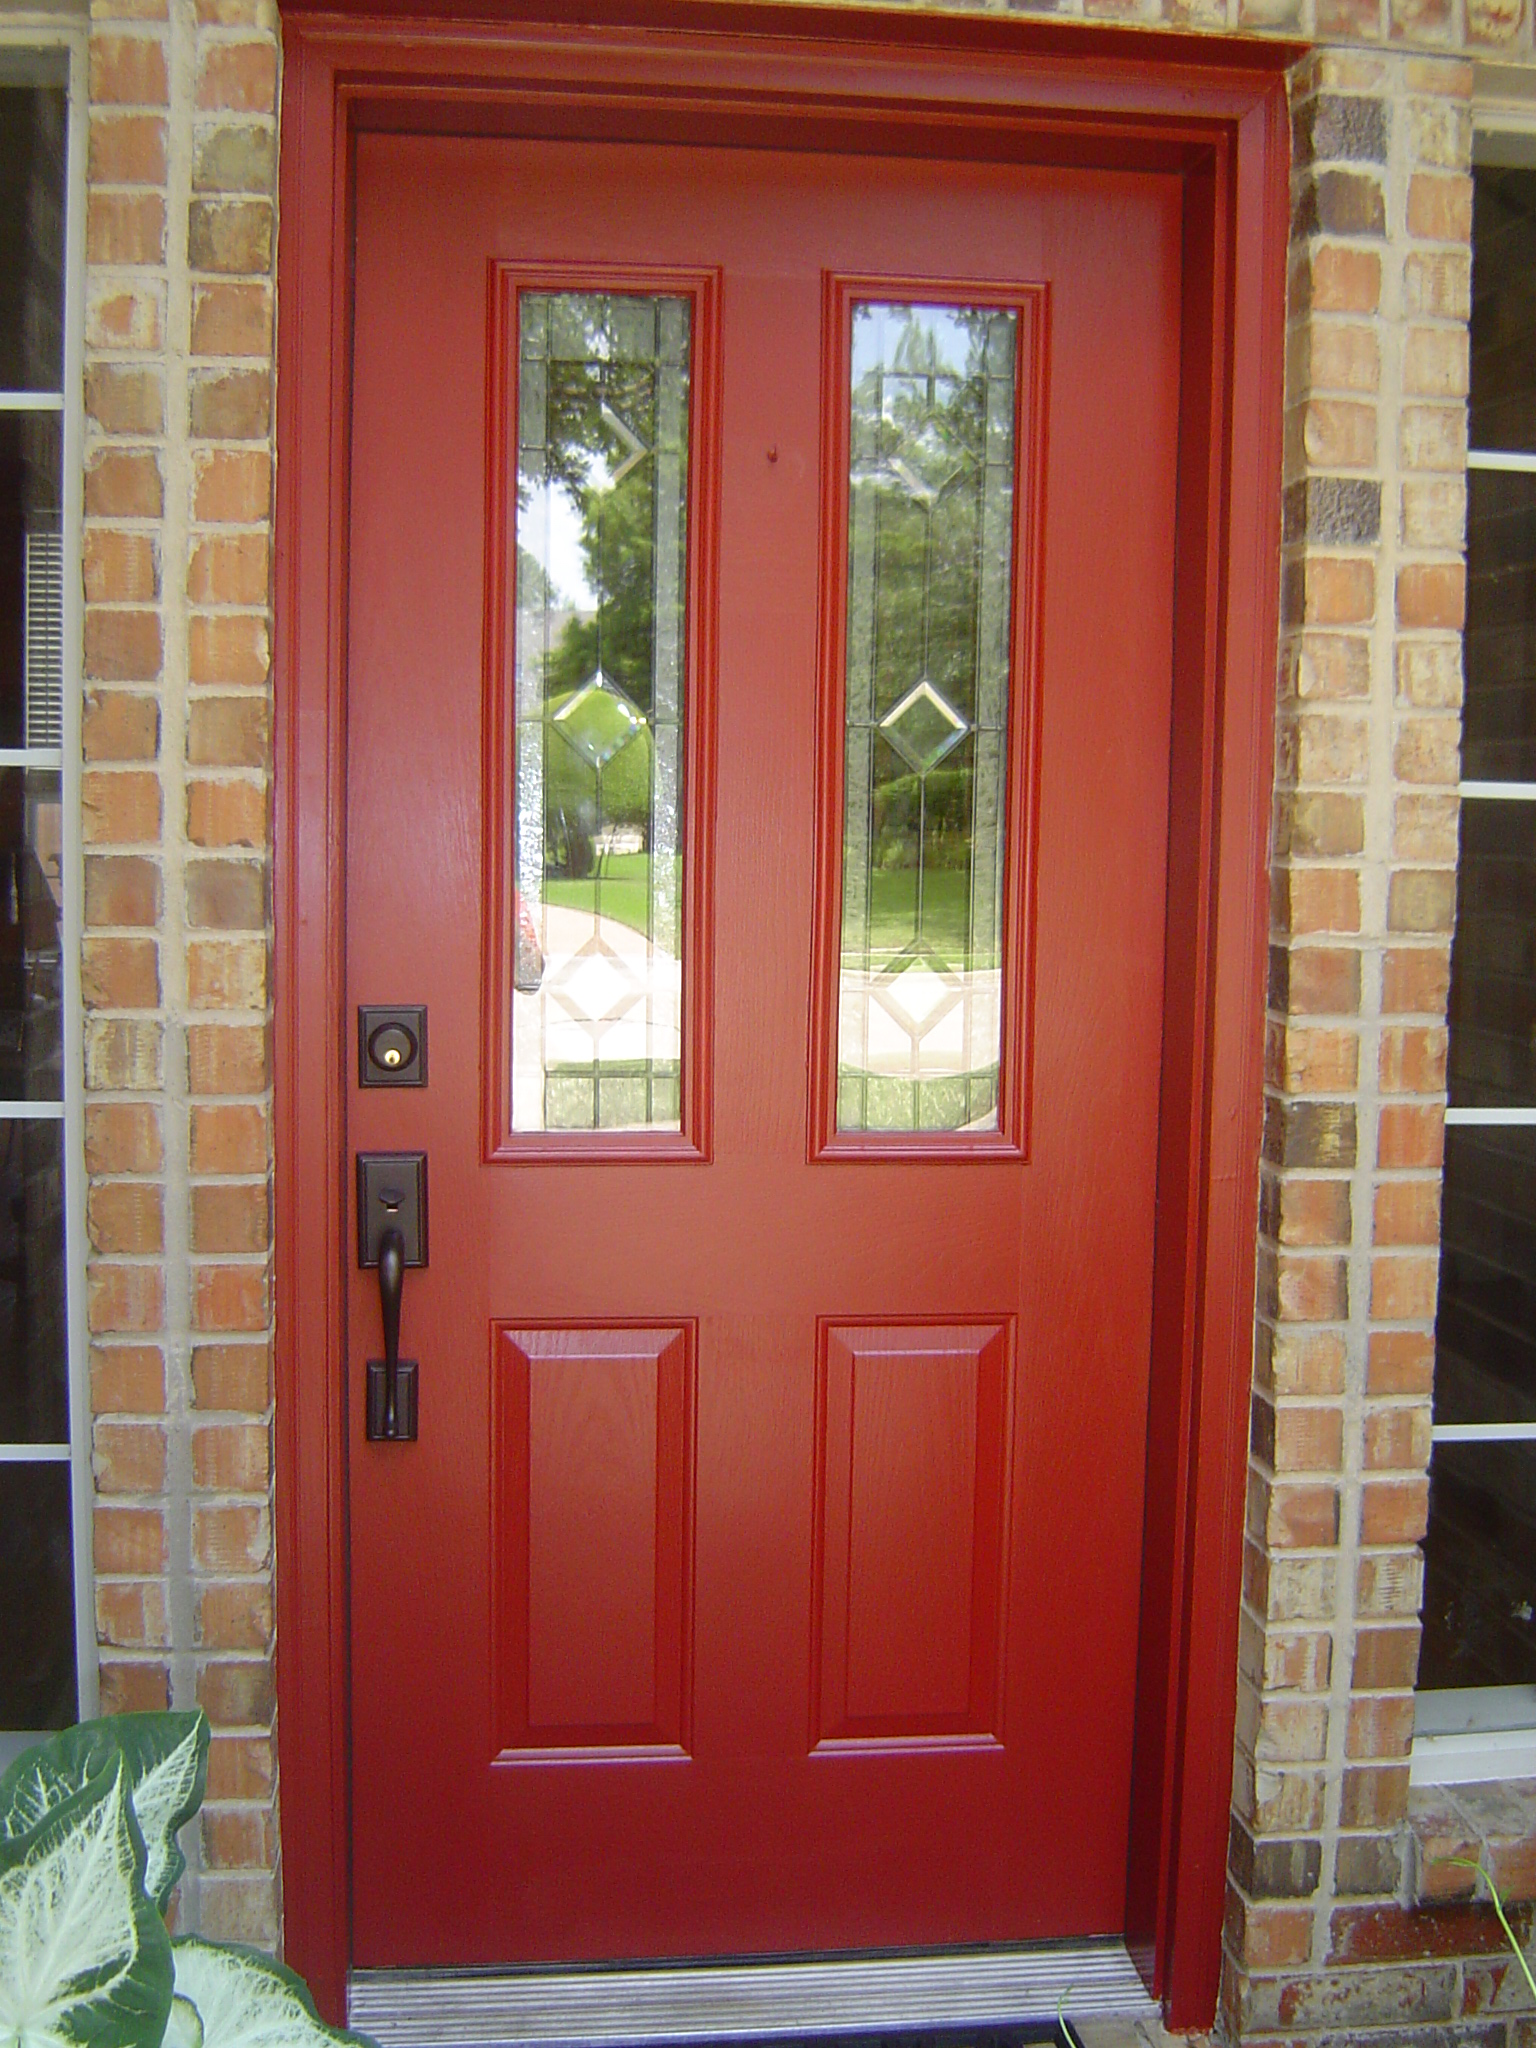 Home star staging blog home star staging for Home hardware doors